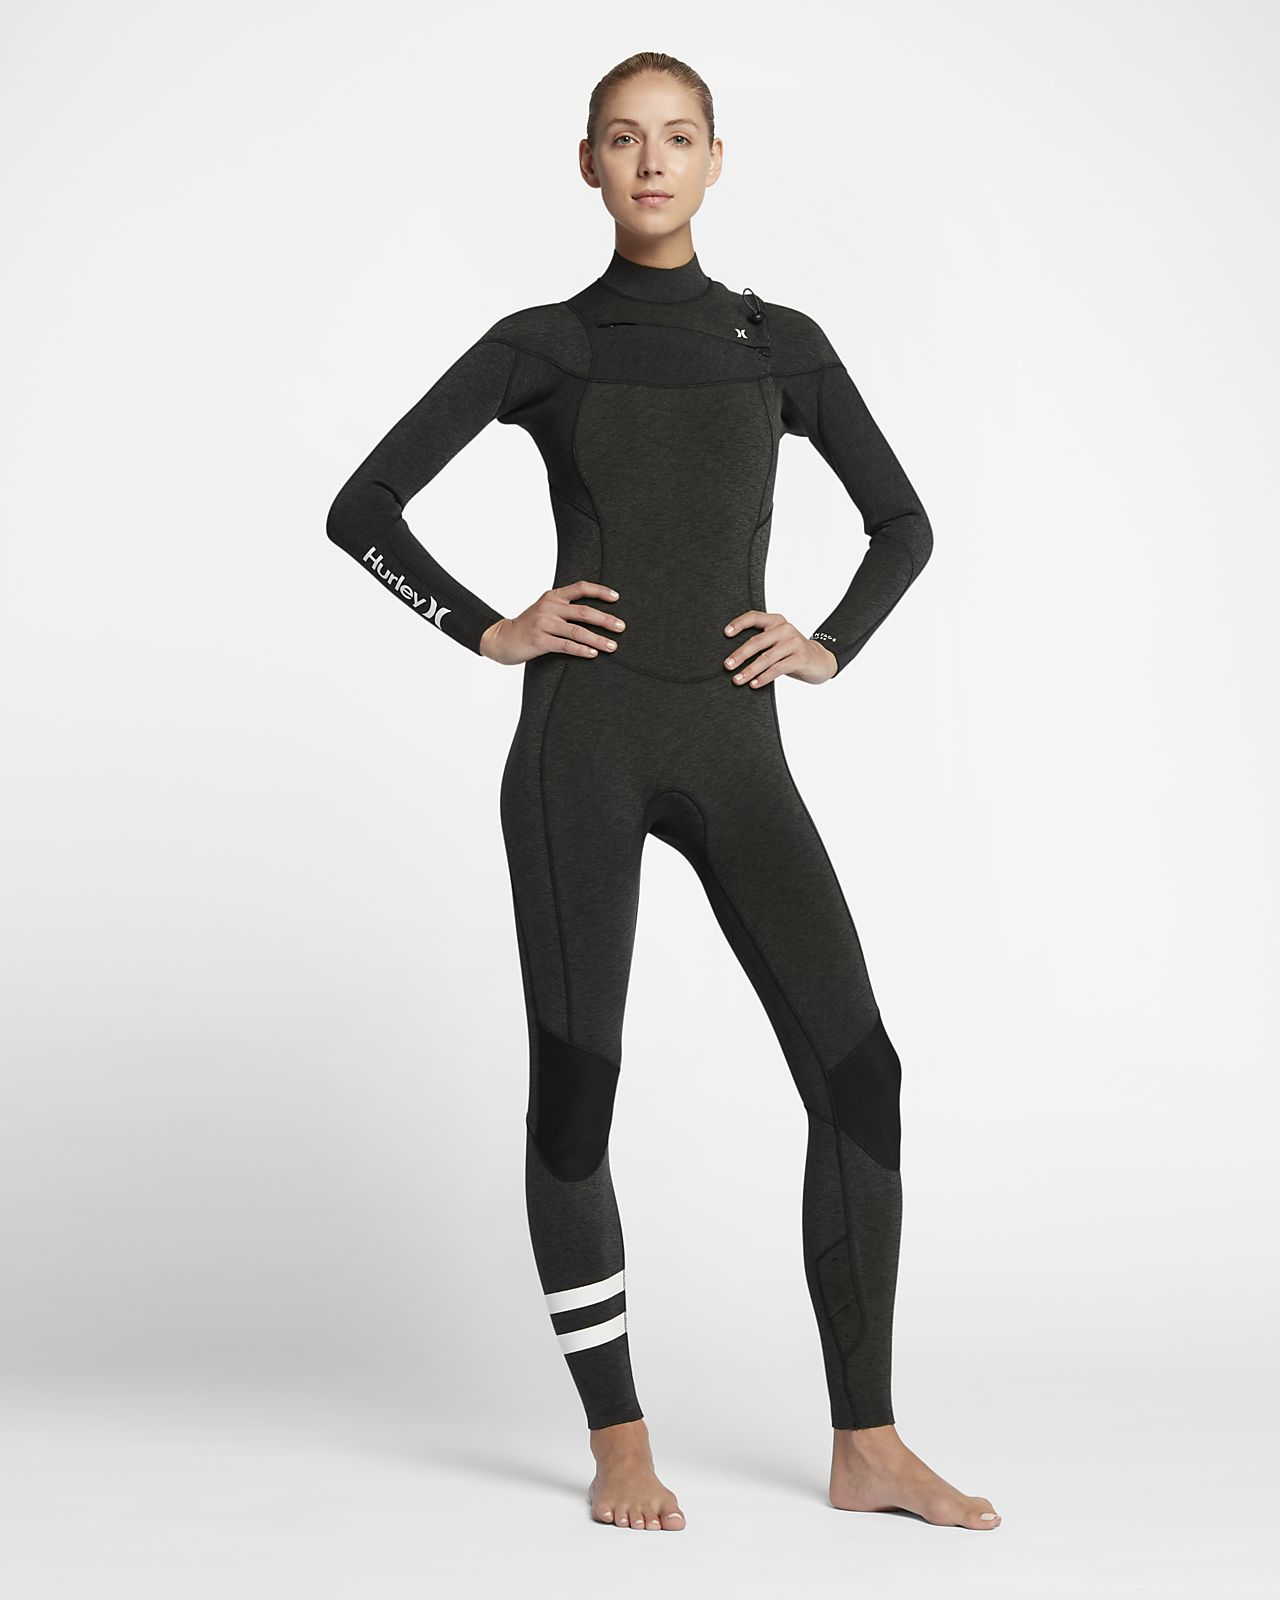 ... Hurley Advantage Plus 3/2mm Fullsuit Women's Wetsuit